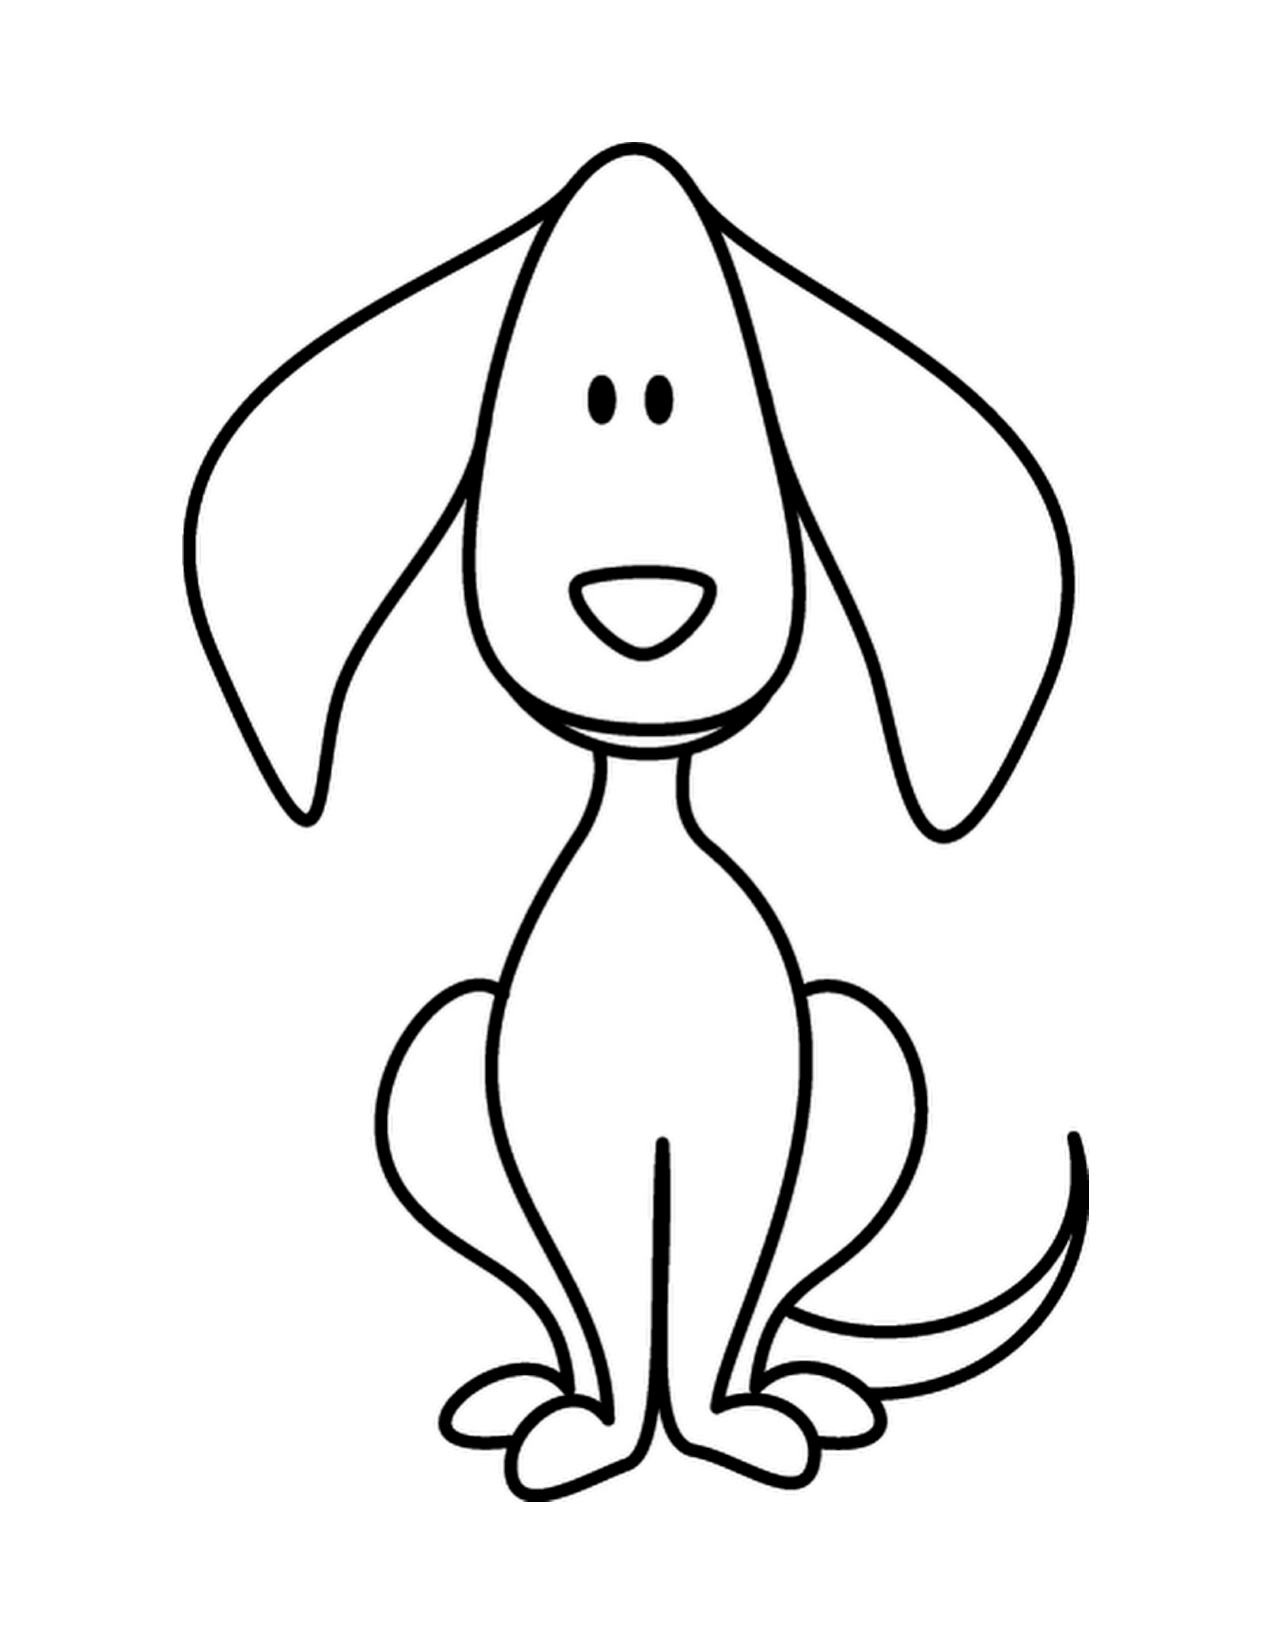 Puppy Dog Doodle Coloring Page Coloring